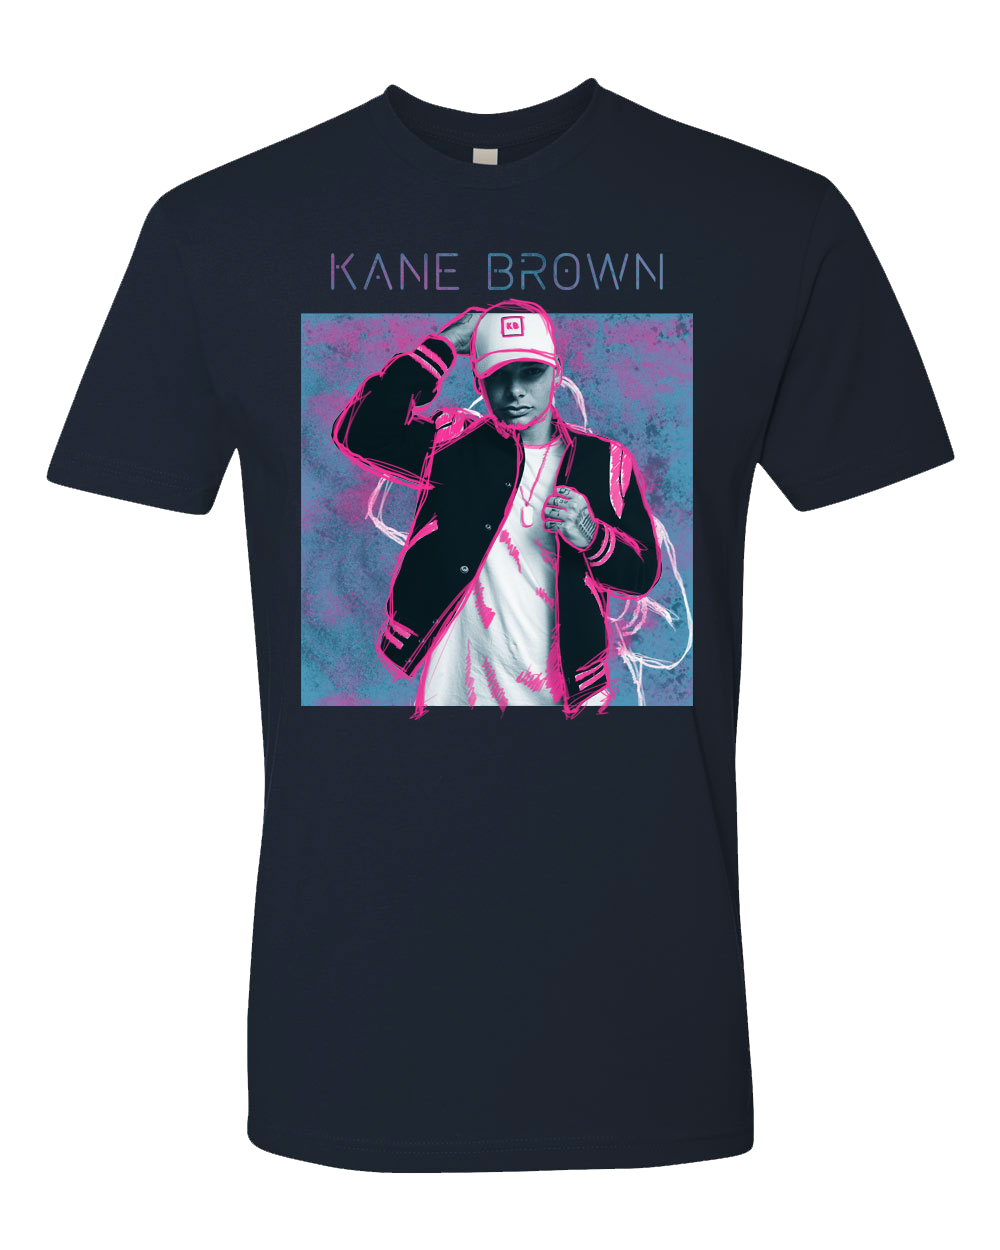 Live Forever Tour Tee - Navy & Neon